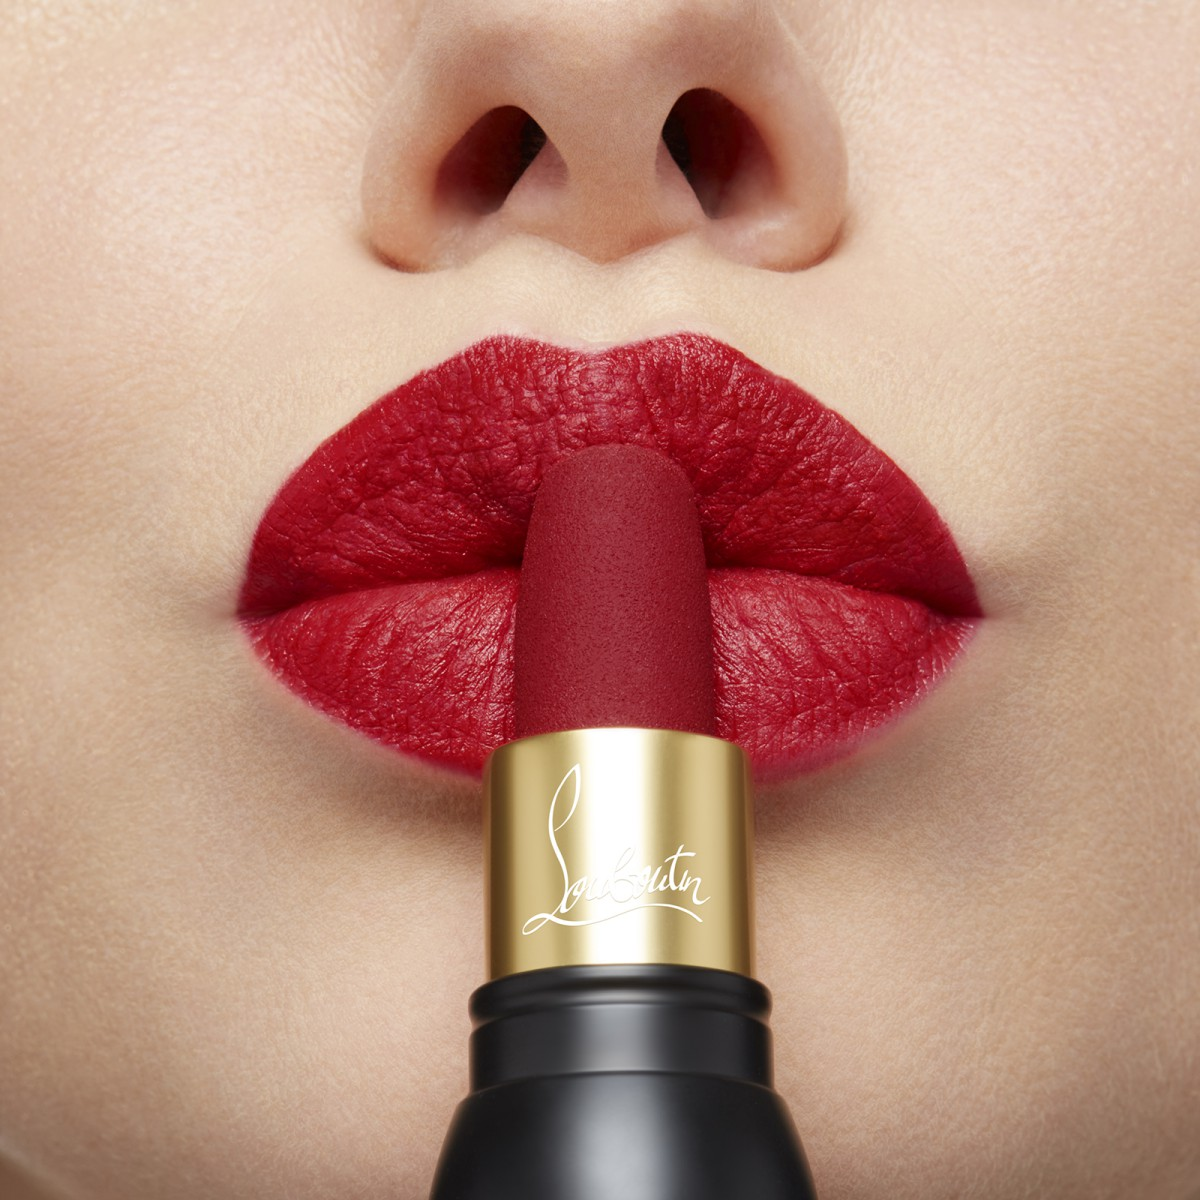 Beauty - Loubiléopard Velvet Matte Lip Colour - Christian Louboutin